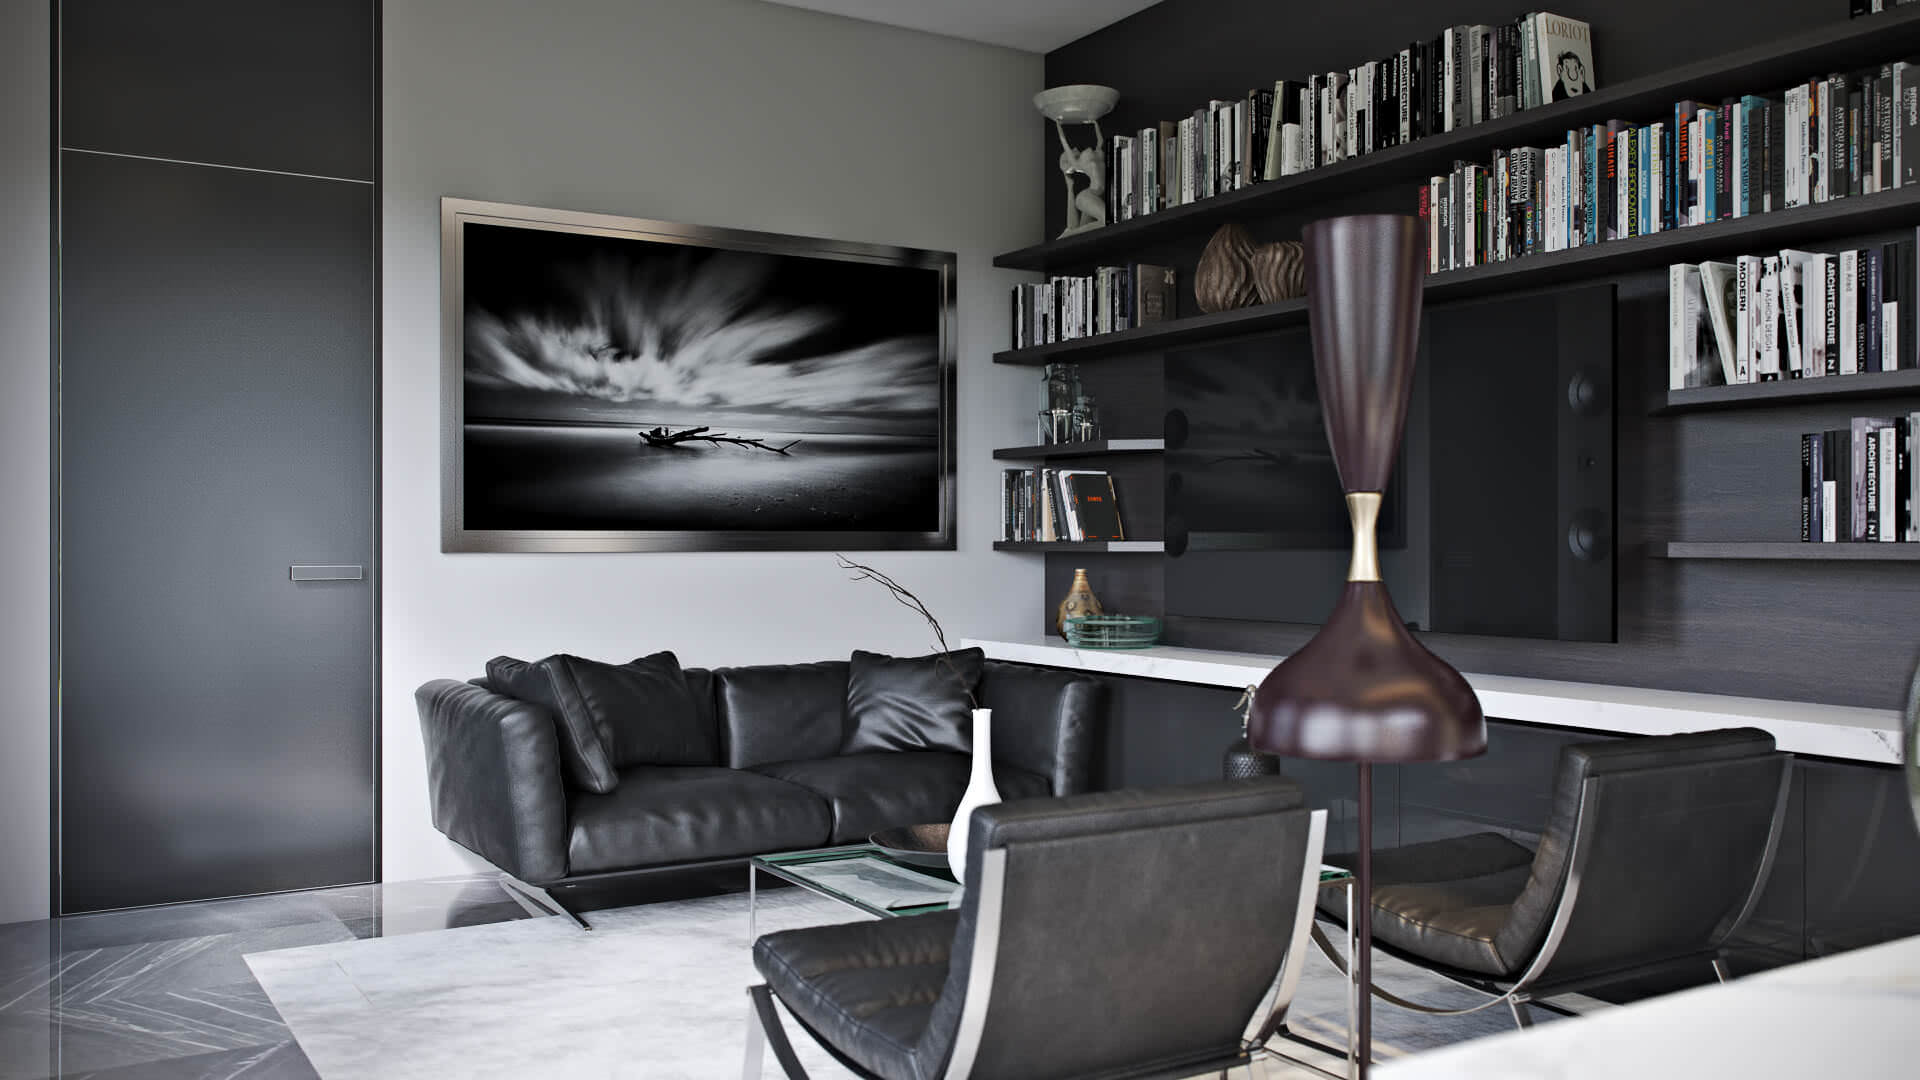 Splendid 3D Rendering Of A Home Office Interior Design View03